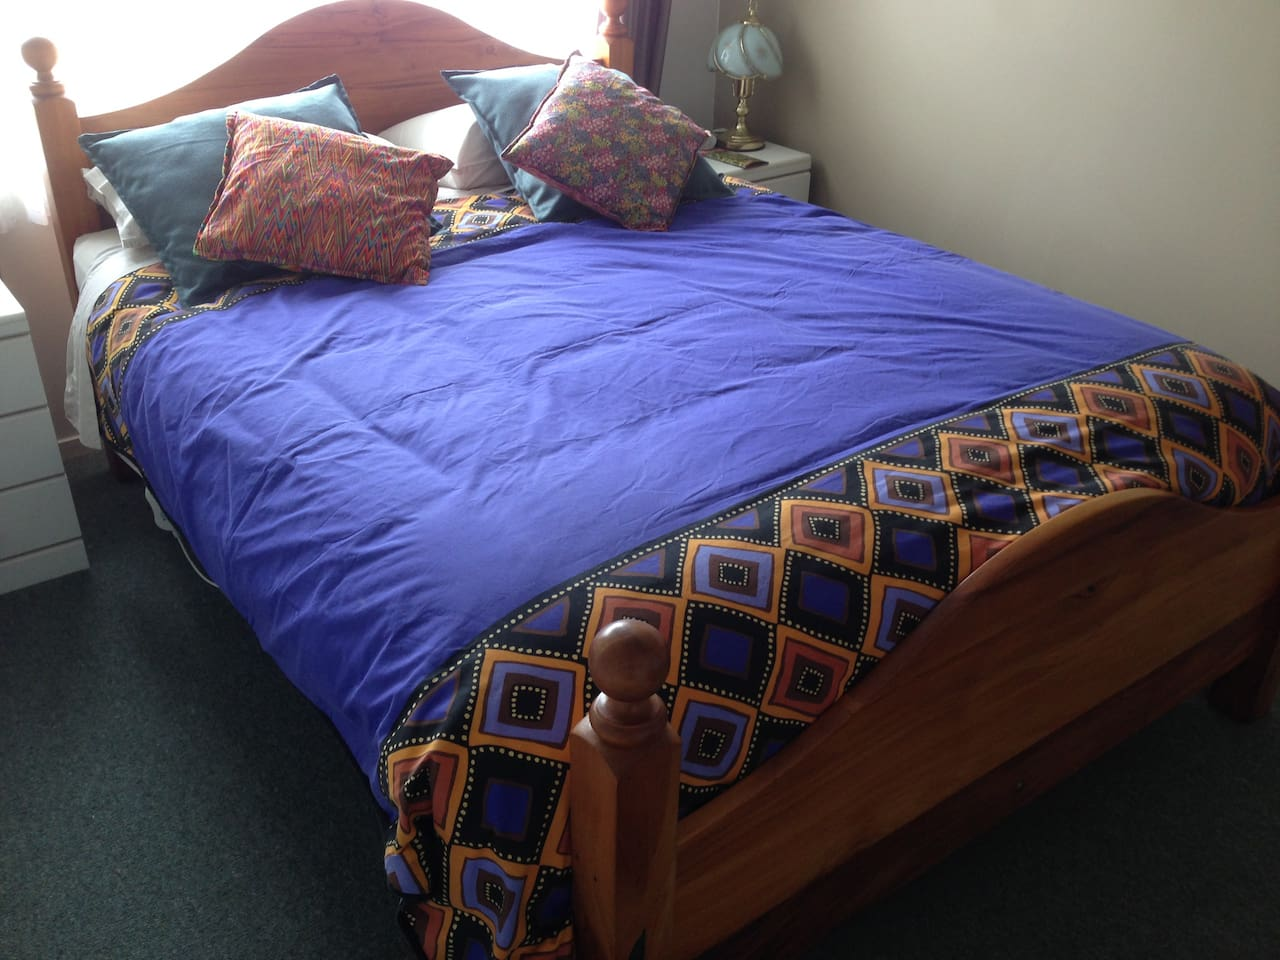 The bed  is a comfortable queen size and the room has a ceiling fan, bedside lamp,  and queen size electric blanket